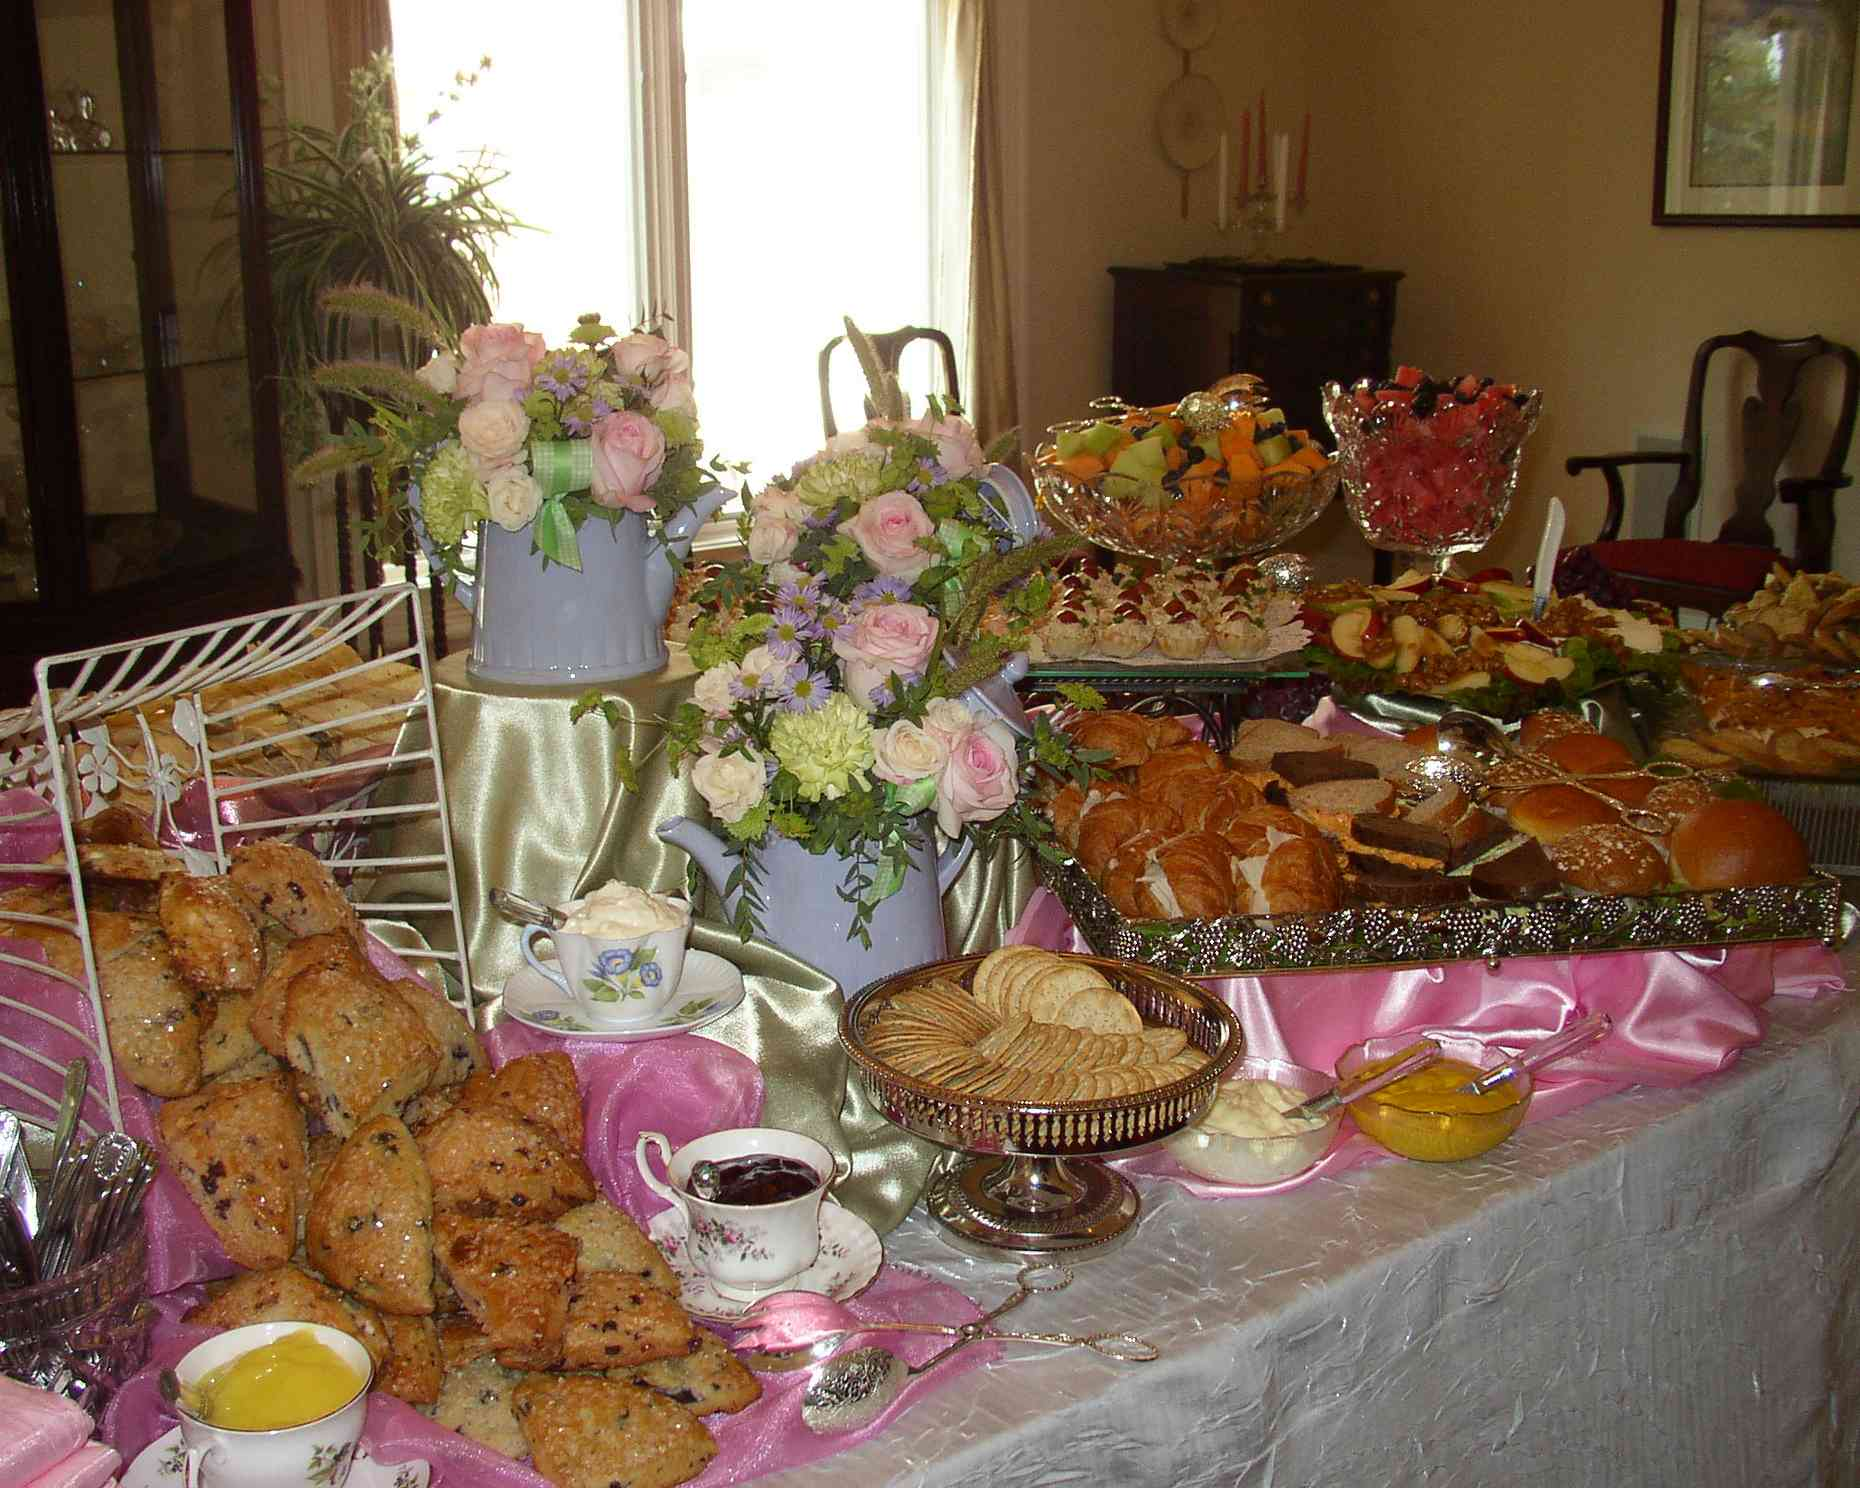 Unusual A Crowd Tea Party Girl Tea Party Food Ideas Pinterest Tea Party Food Menu So How To Prepare A Tea Party nice food Tea Party Food